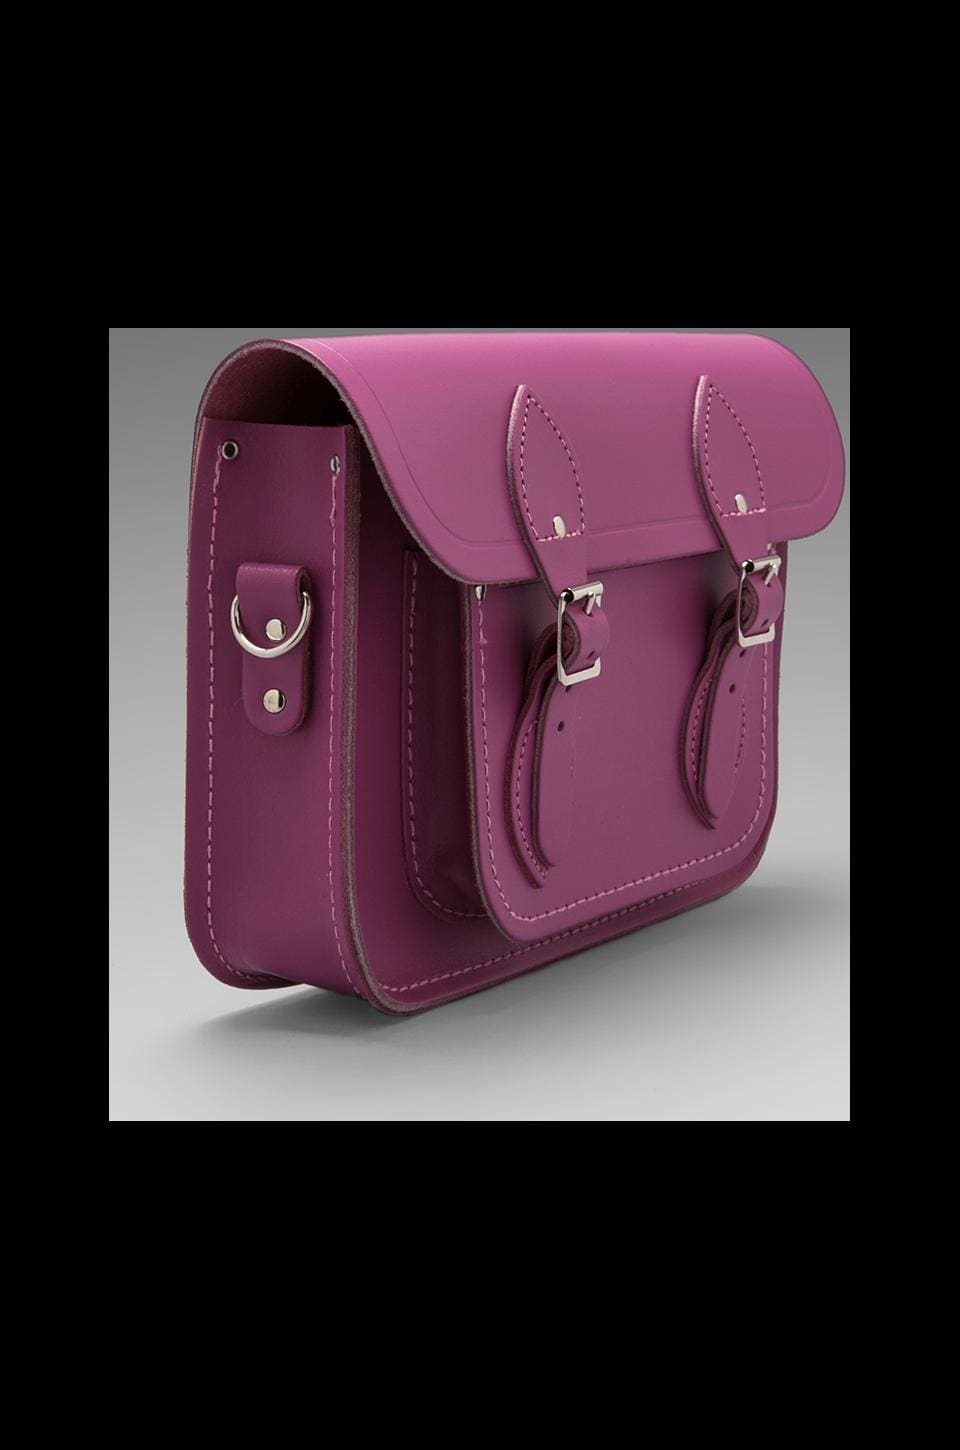 "The Cambridge Satchel Company Detachable Short/Long Strap Satchel 11"" in Dahlia"